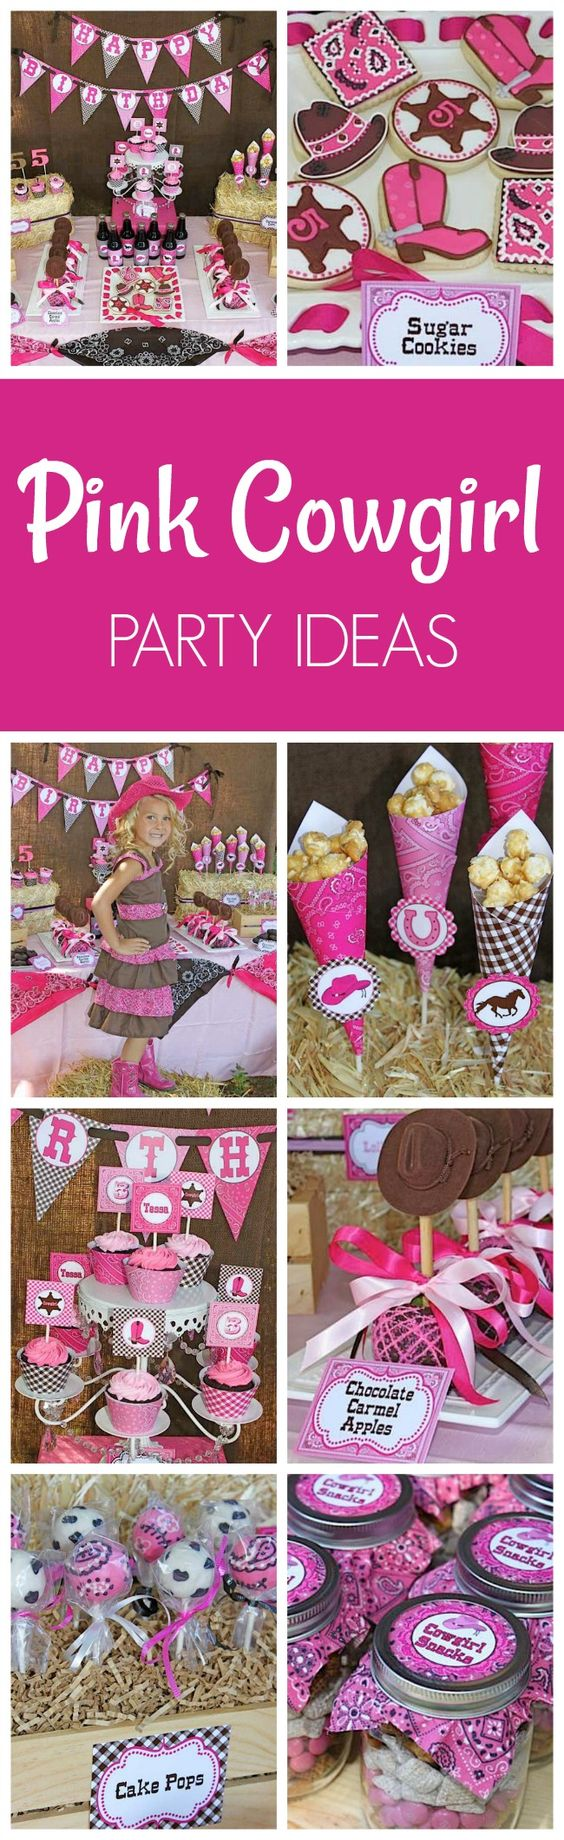 Cowgirl Themed Birthday Party Ideas - Pretty My Party